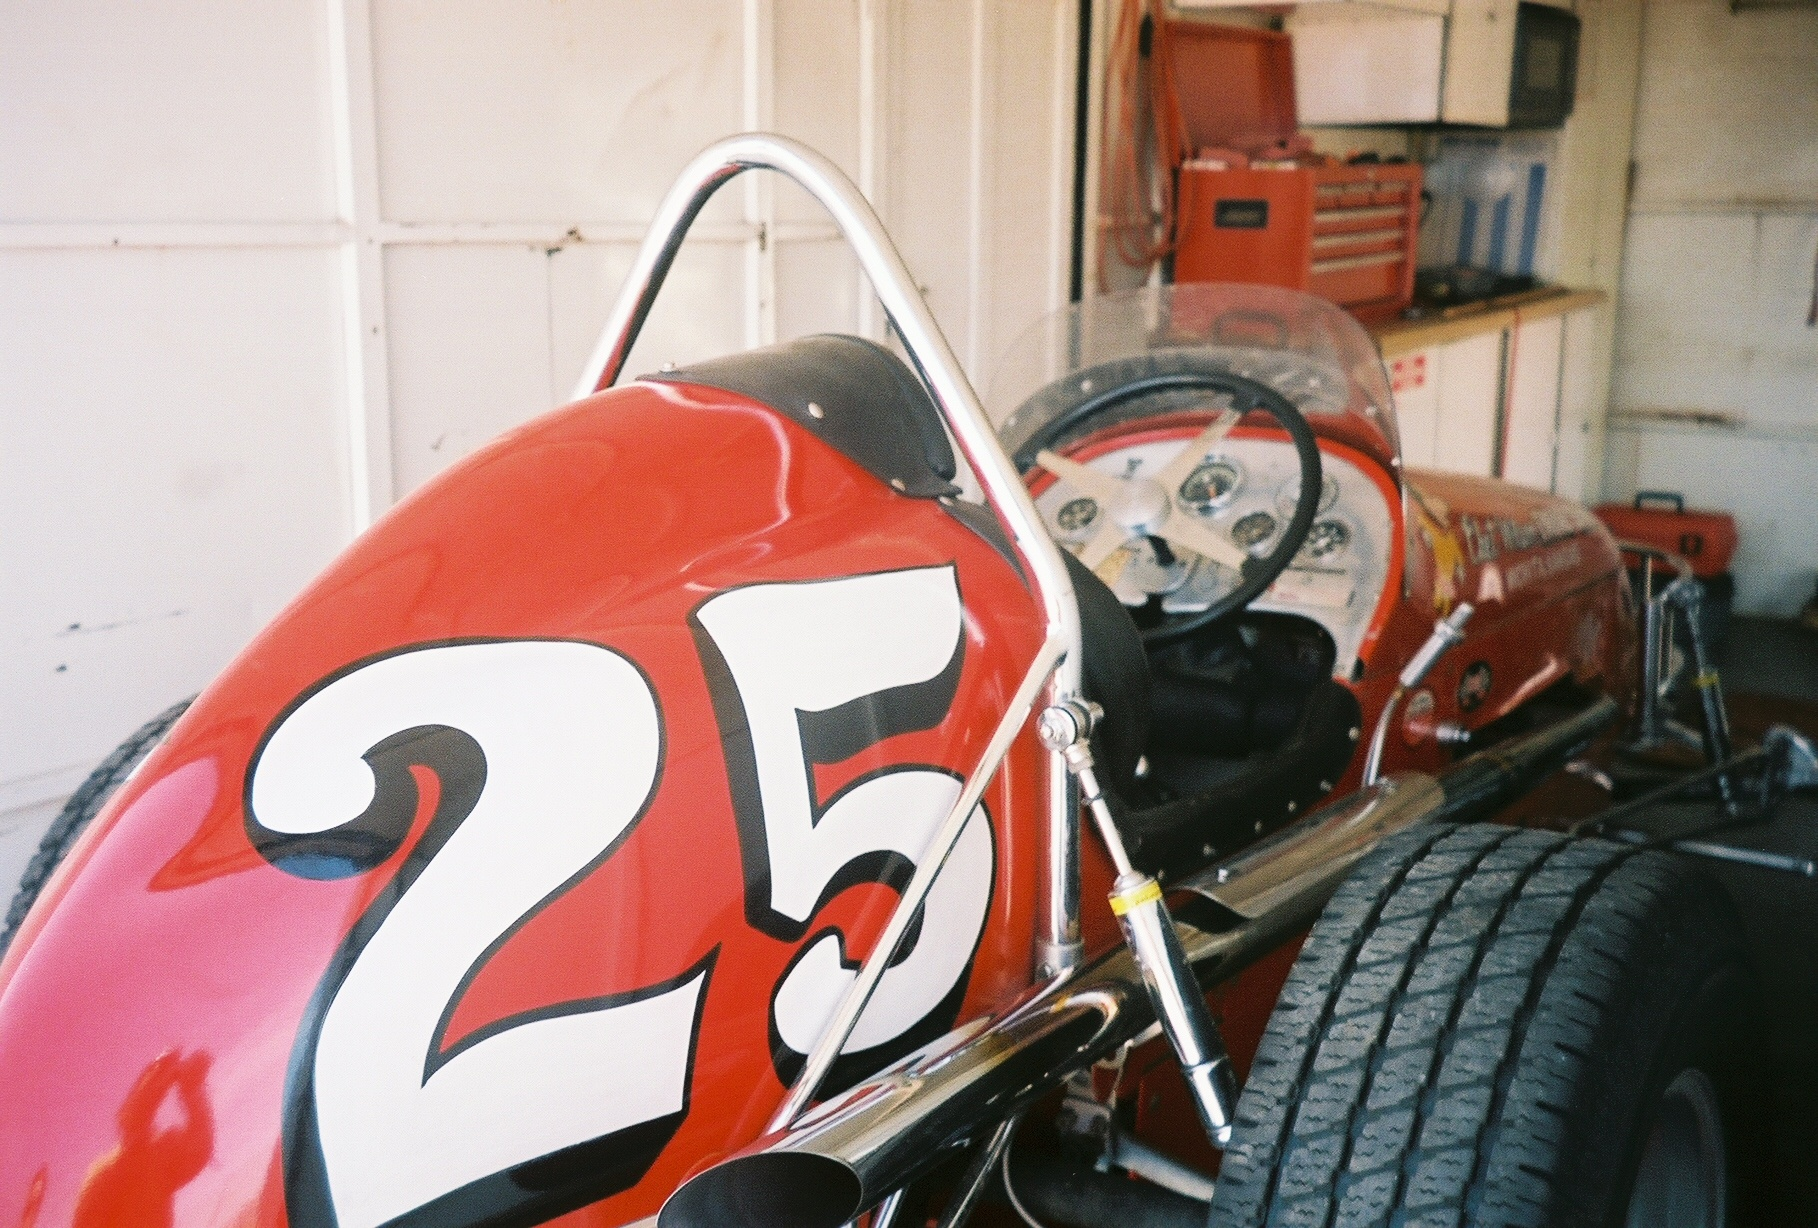 [photograph: Offy Killer, No. 25 Sprint Car, Chet Wilson, Wichita | Jetmore Motorplex | 2005 Photograph Copyright, George Laughead]